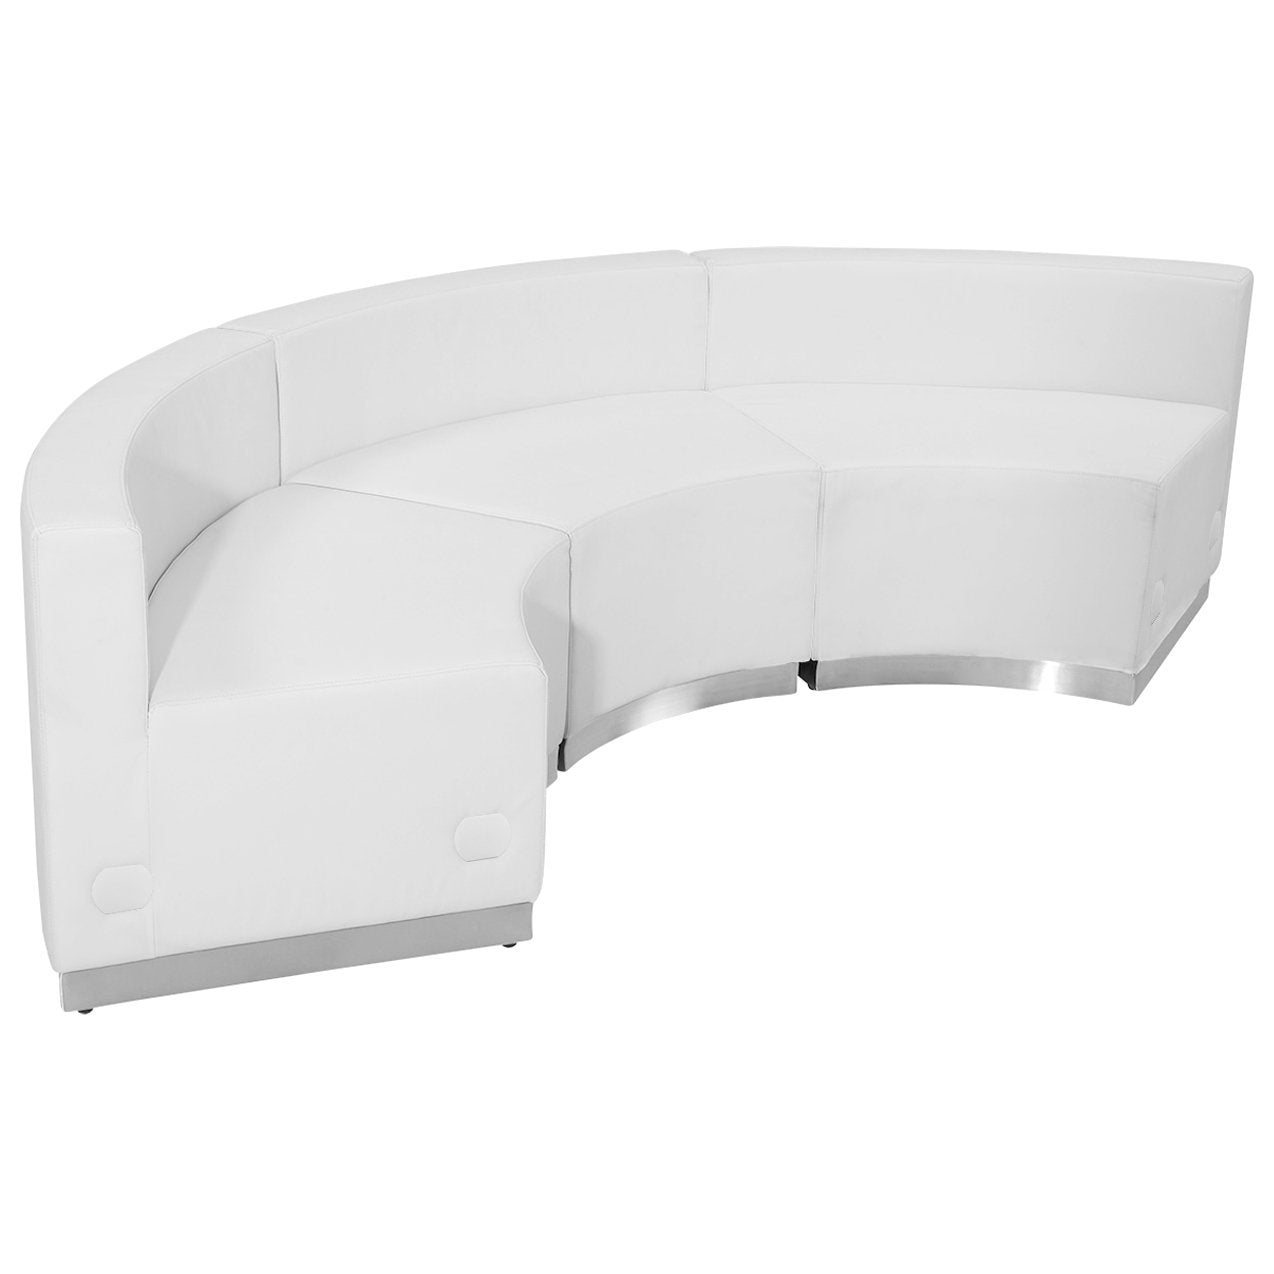 Flash Furniture ZB-803-740-SET-WH-GG HERCULES Alon Series White Leather Reception Configuration, 3 Pieces from Flash Furniture